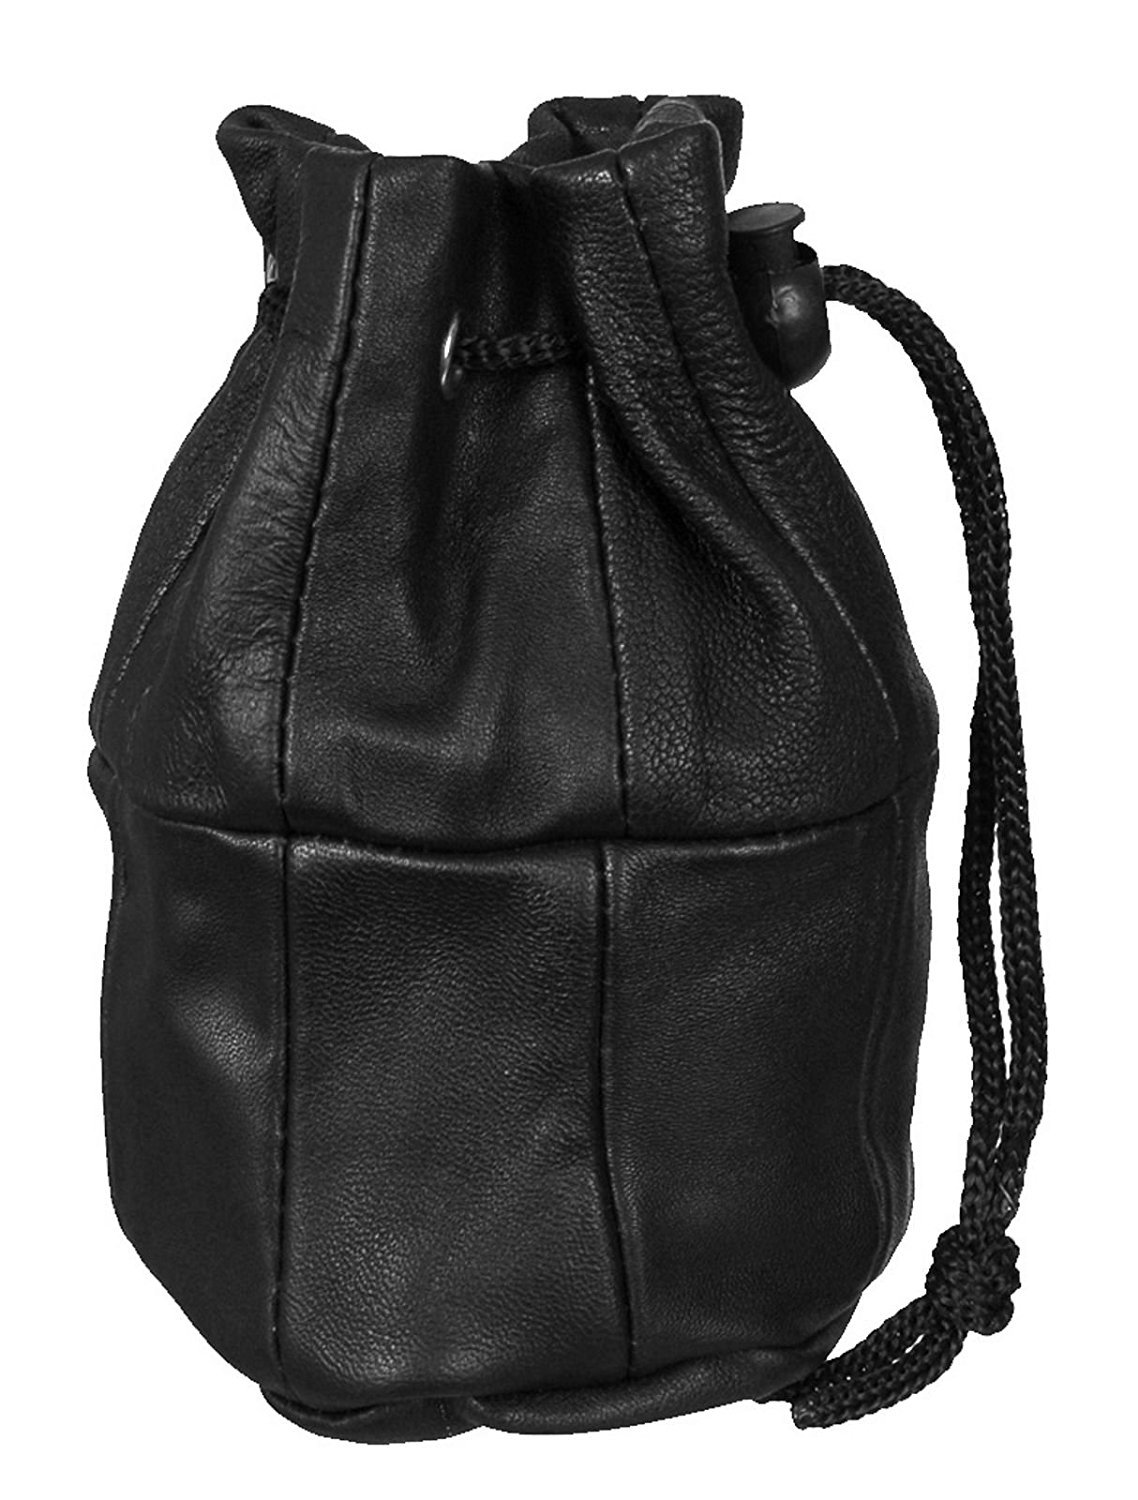 Real Leather Black Drawstring Bag purse Pouch Money Coin Holder Unisex Gent Ladies